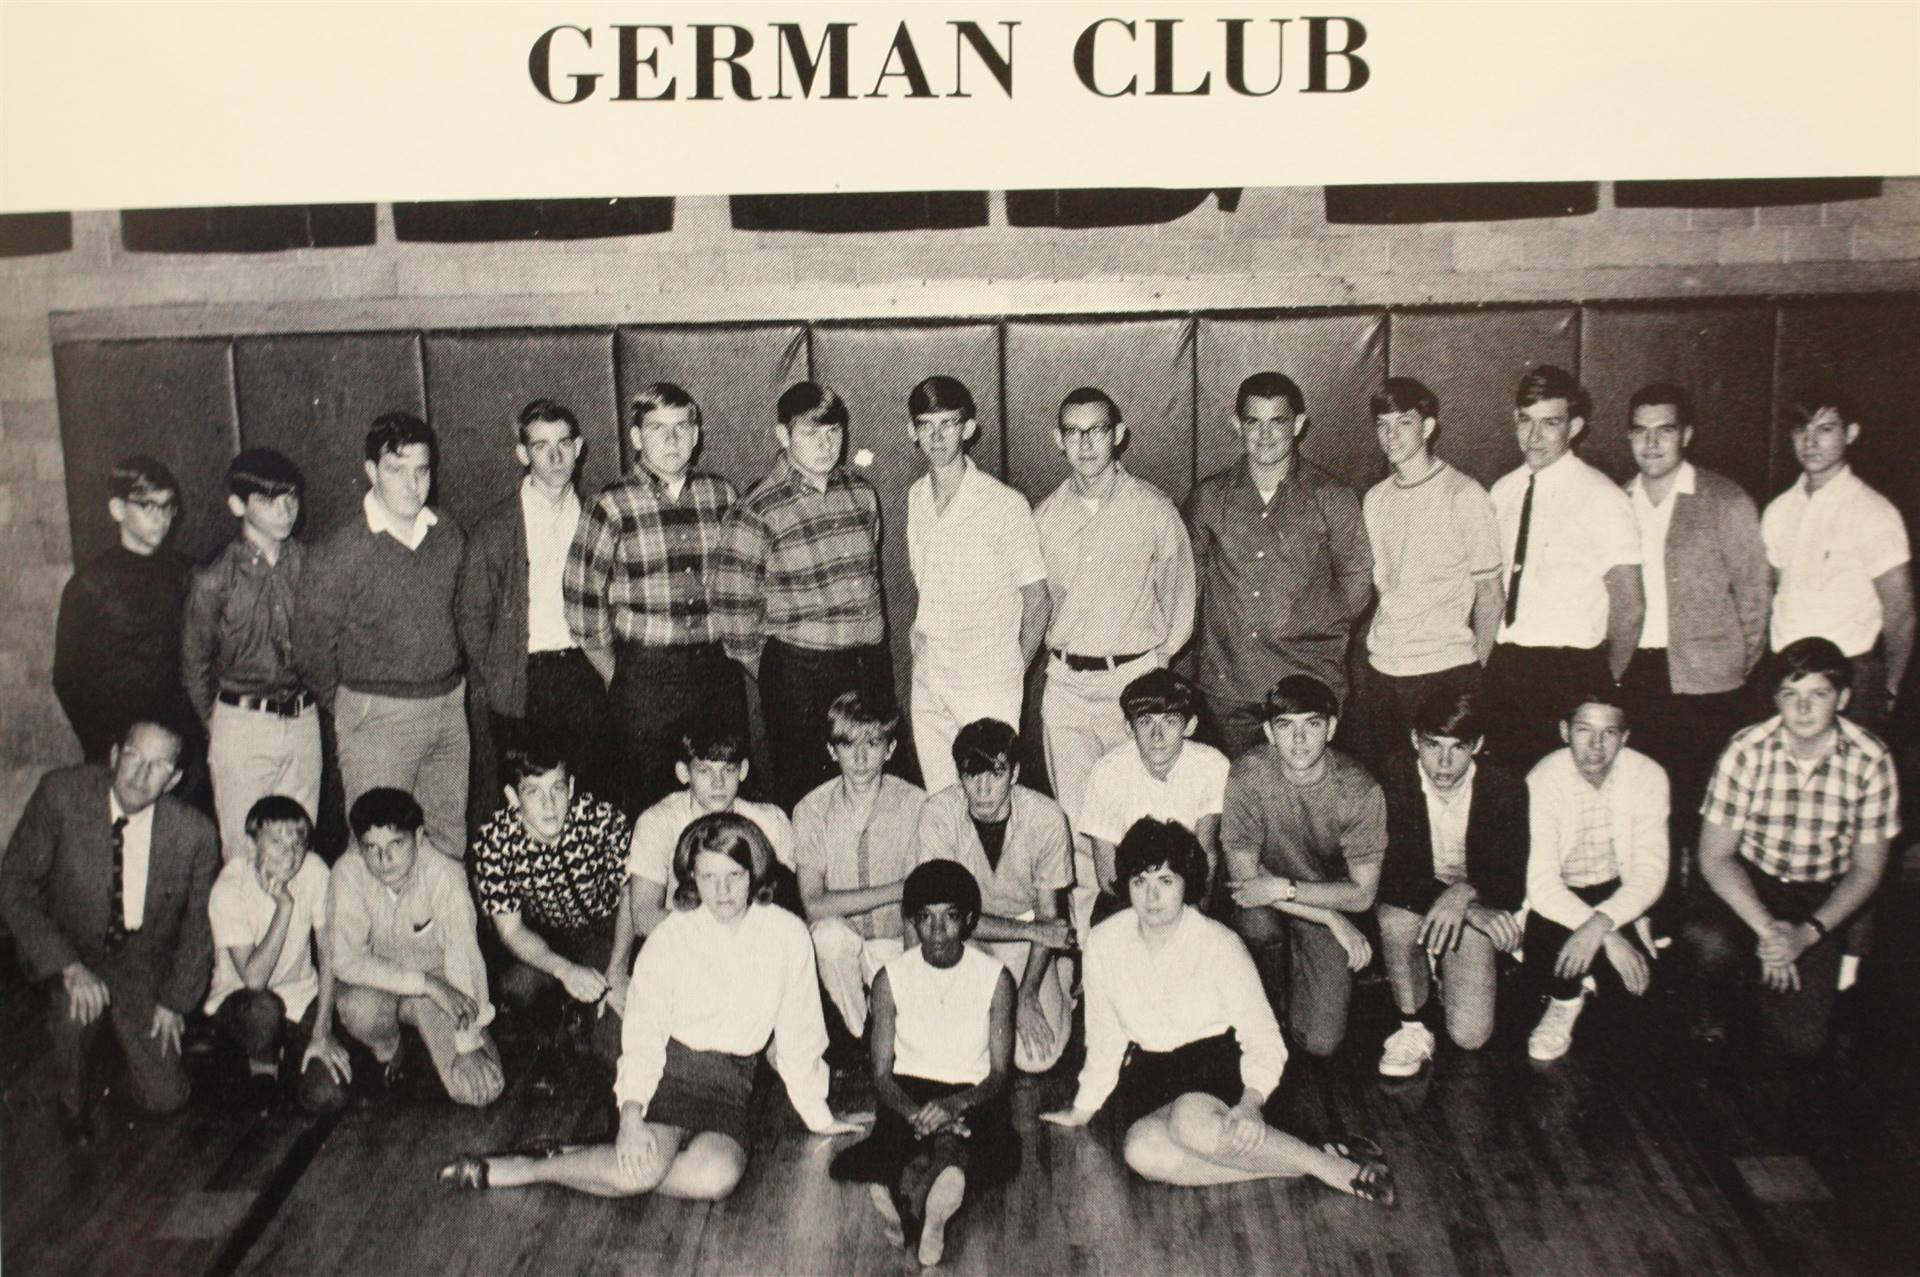 1969 German Club